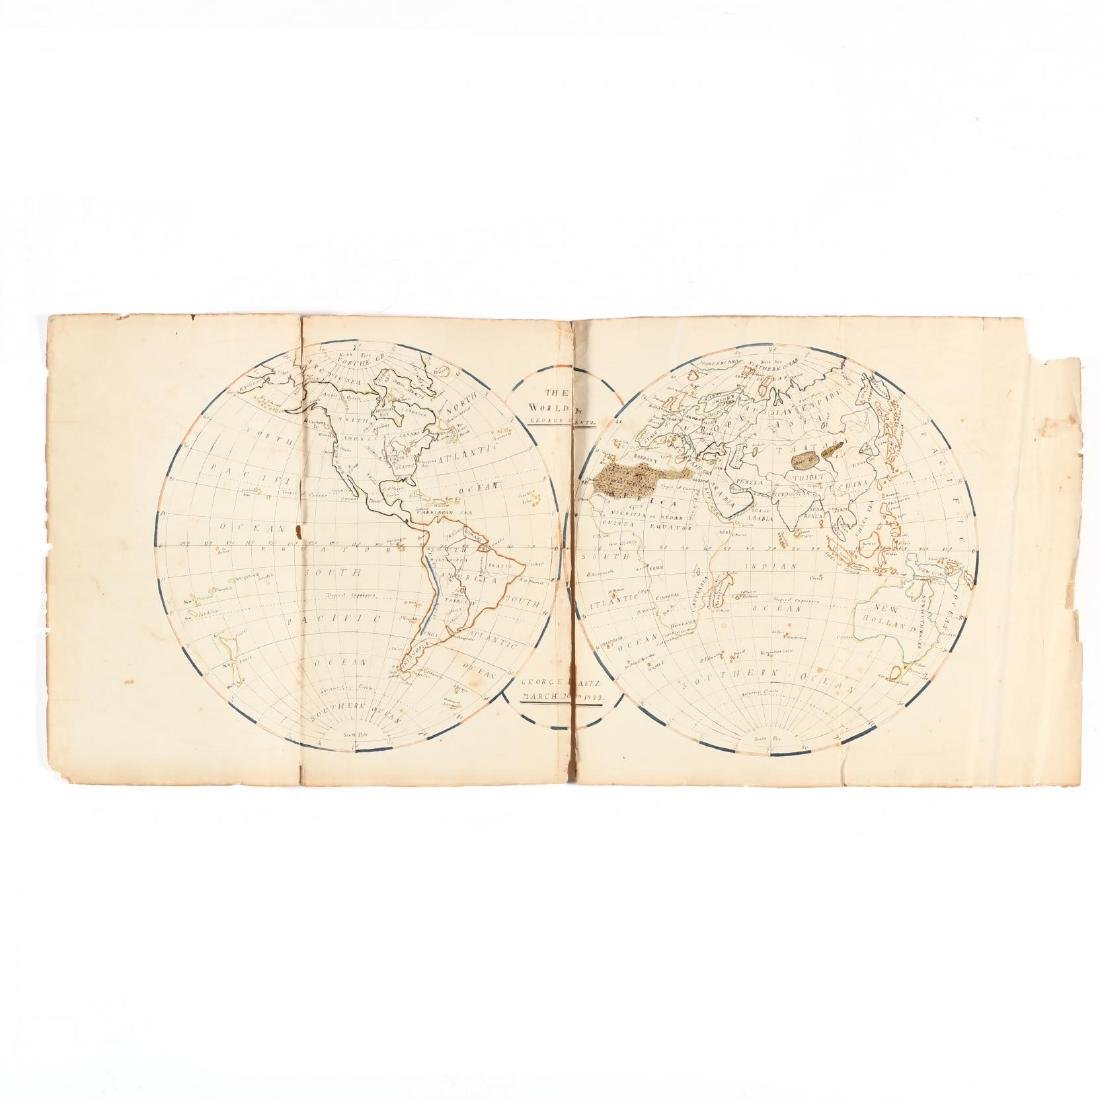 Schoolboy's Calligraphy Double-Hemisphere Map